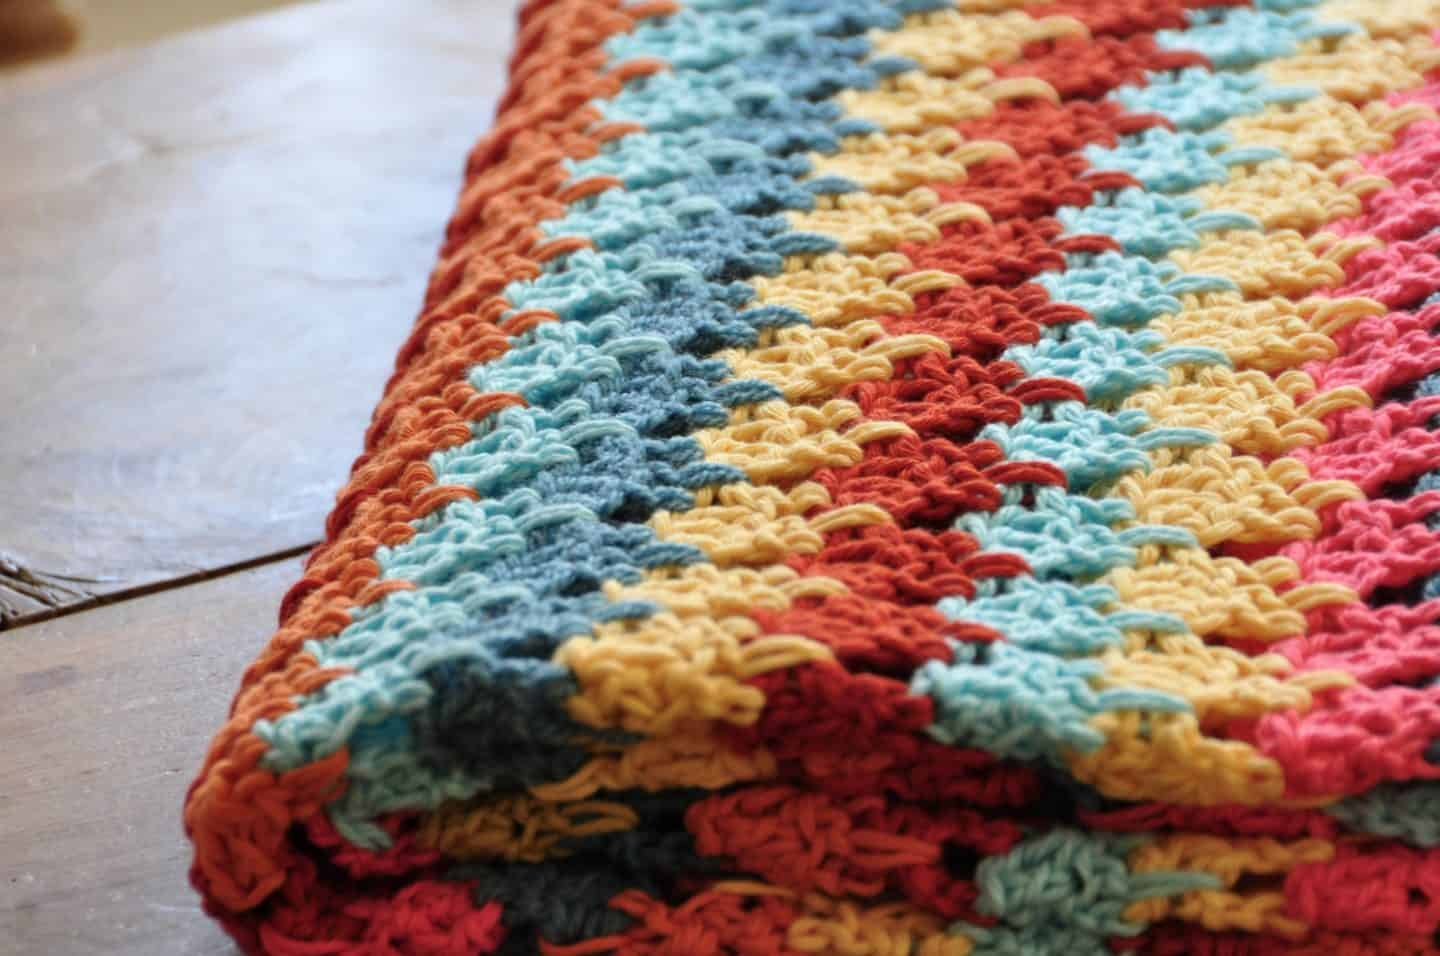 Tackle your yarn stash and learn how to crochet the larksfoot stitch with this beautiful and easy free crochet blanket pattern. With step by step photos and entire crochet pattern, the larksfoot makes the perfect baby blanket, home throw, scarf or garment that is great for a beginner.